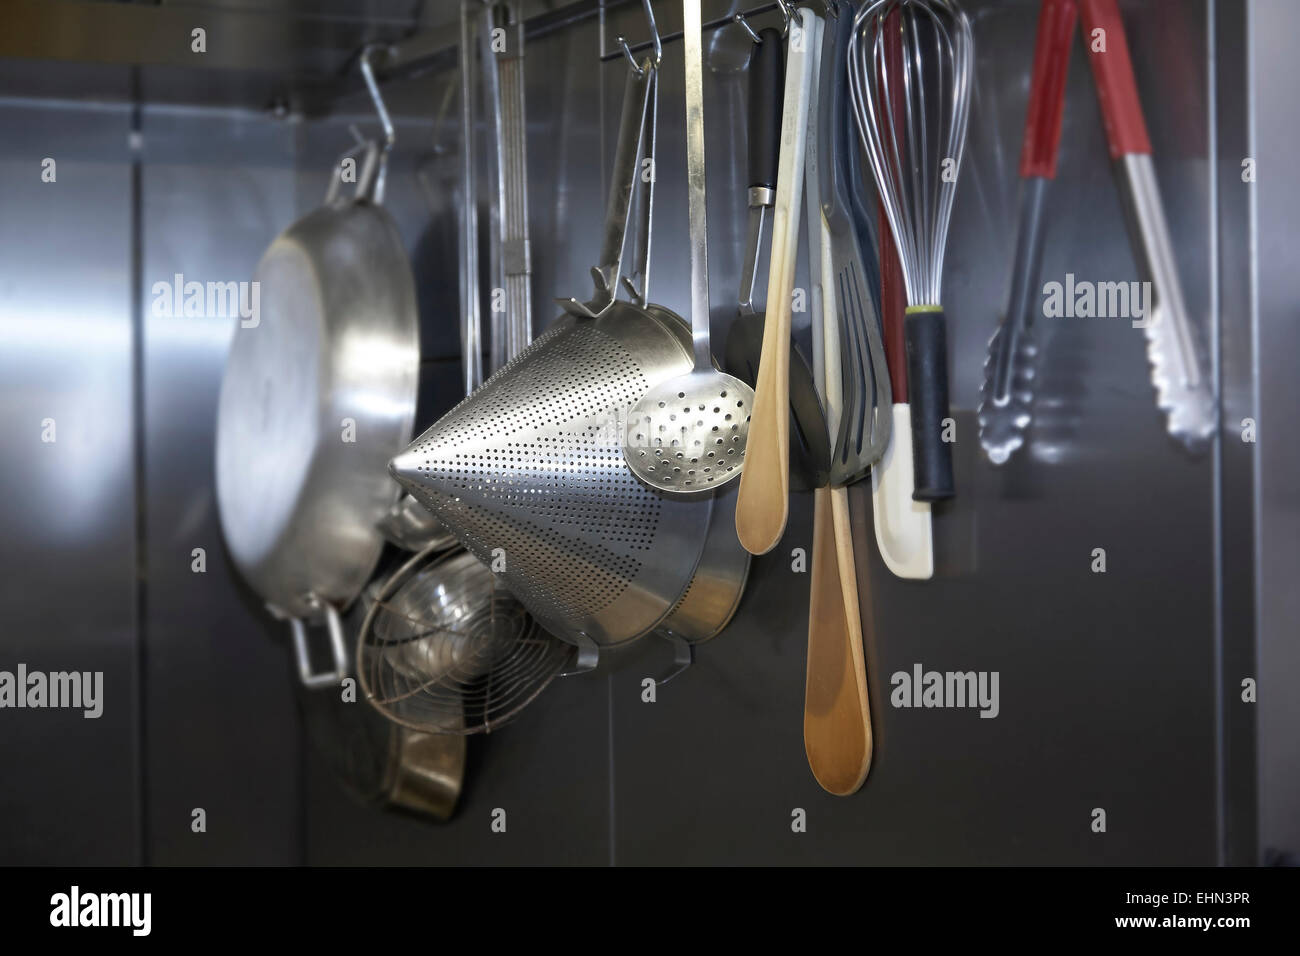 Utensils hanging up in a professional kitchen. - Stock Image